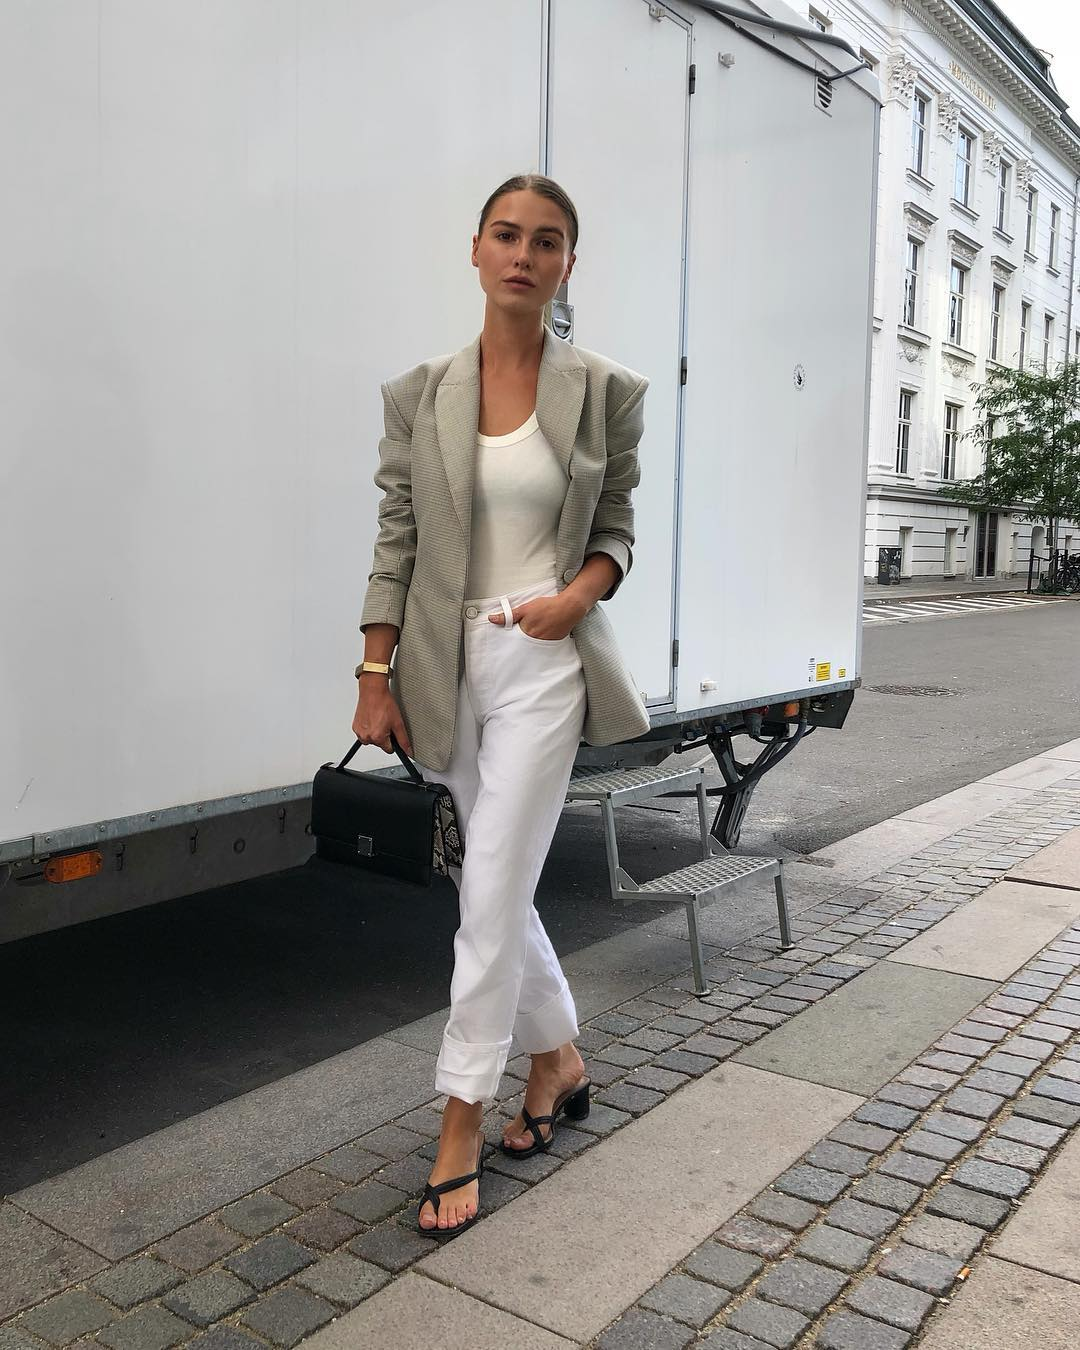 Spring and Summer Instagram Outfit Inspiration — Sophia Roe in a neutral blazer, beige tank top, white cuffed jeans, and black flip flip sandals